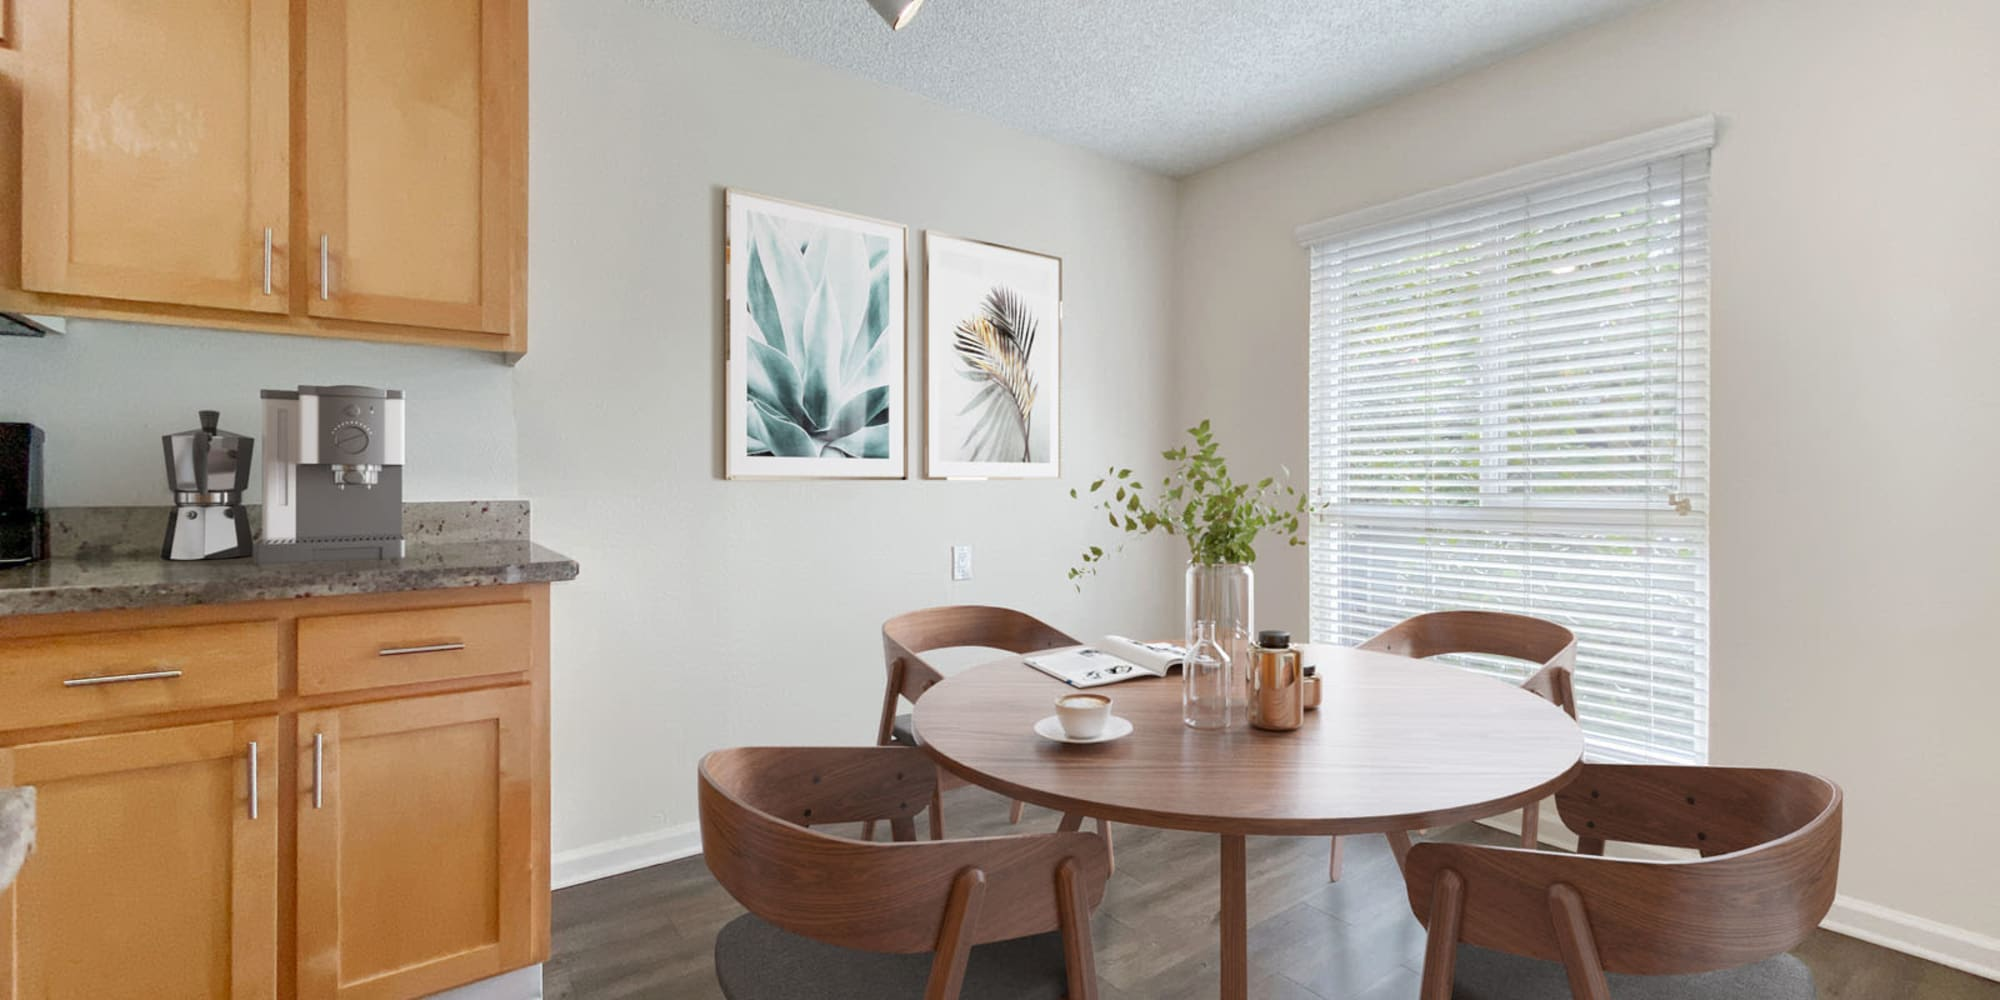 Dining nook next to the kitchen in a model home at Pleasanton Glen Apartment Homes in Pleasanton, California